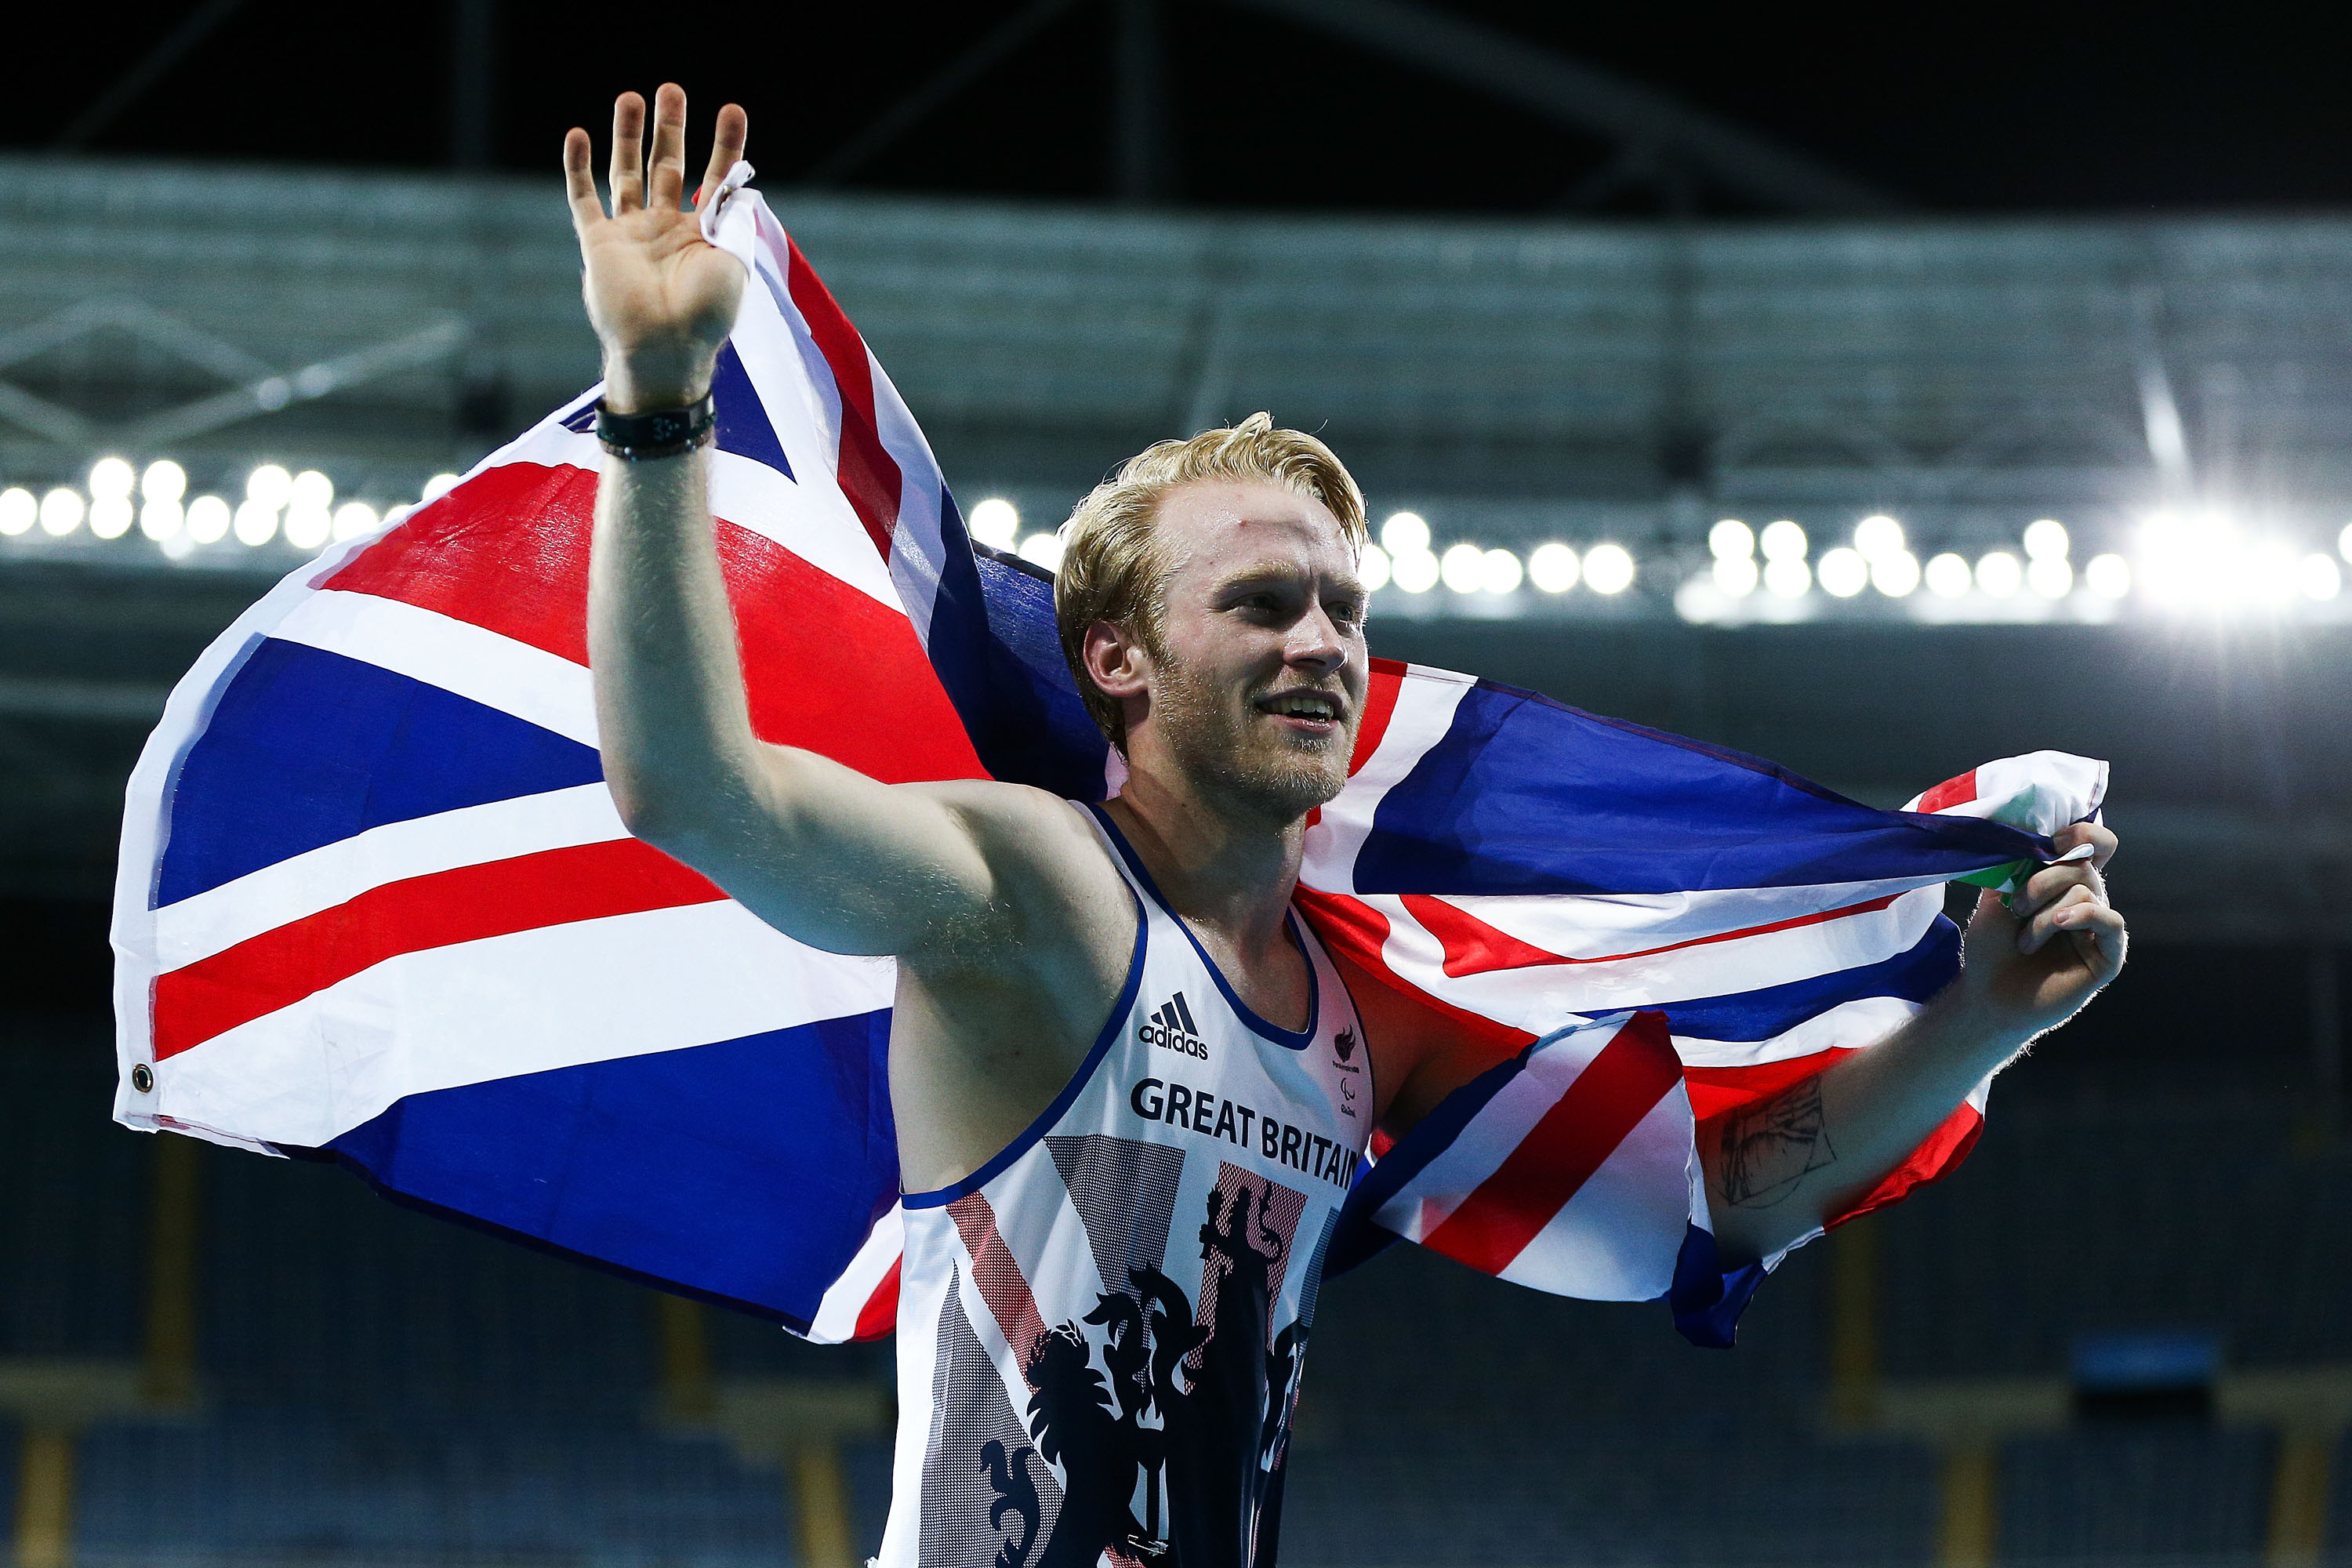 Rio Paralympics 2016: Great Britain win seven gold medals on day two